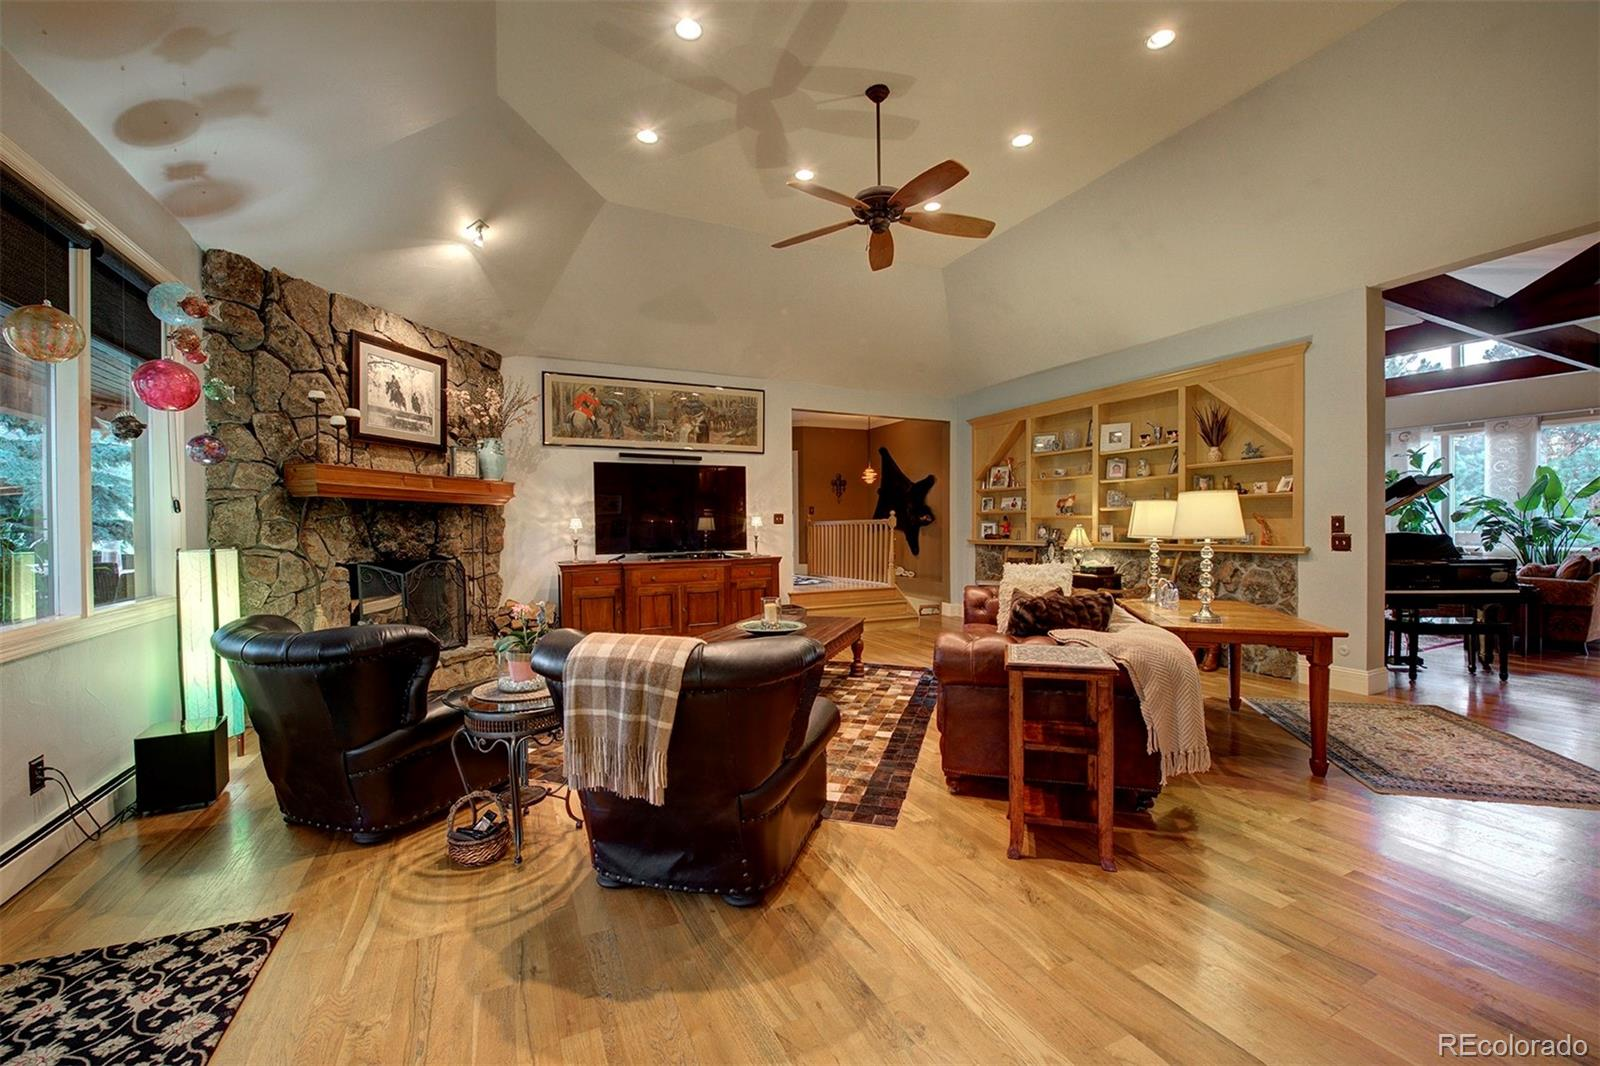 MLS# 8110155 - 11 - 2201 Interlocken Drive, Evergreen, CO 80439